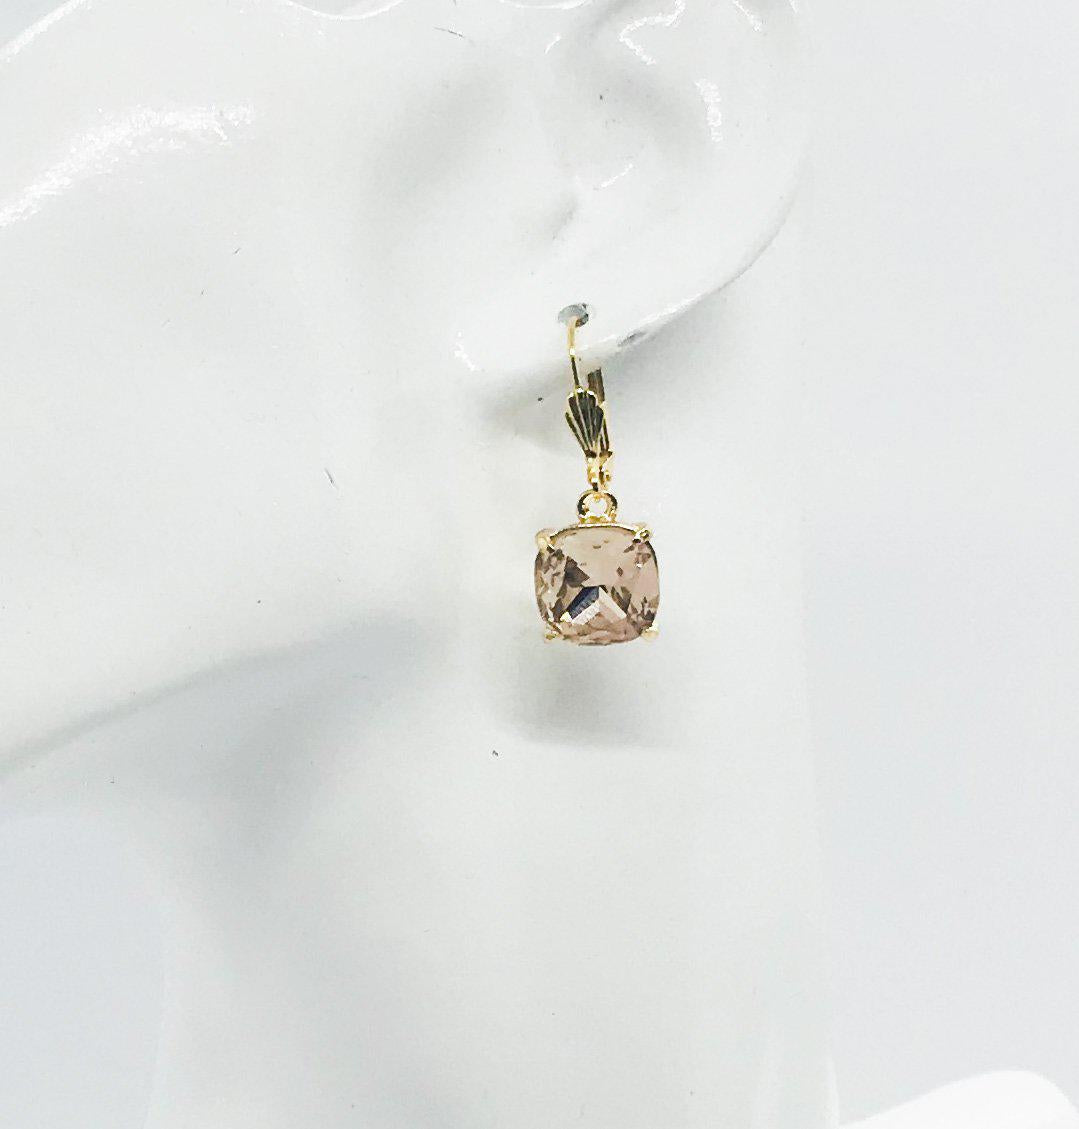 Rhinestone Dangle Earrings - E19-166